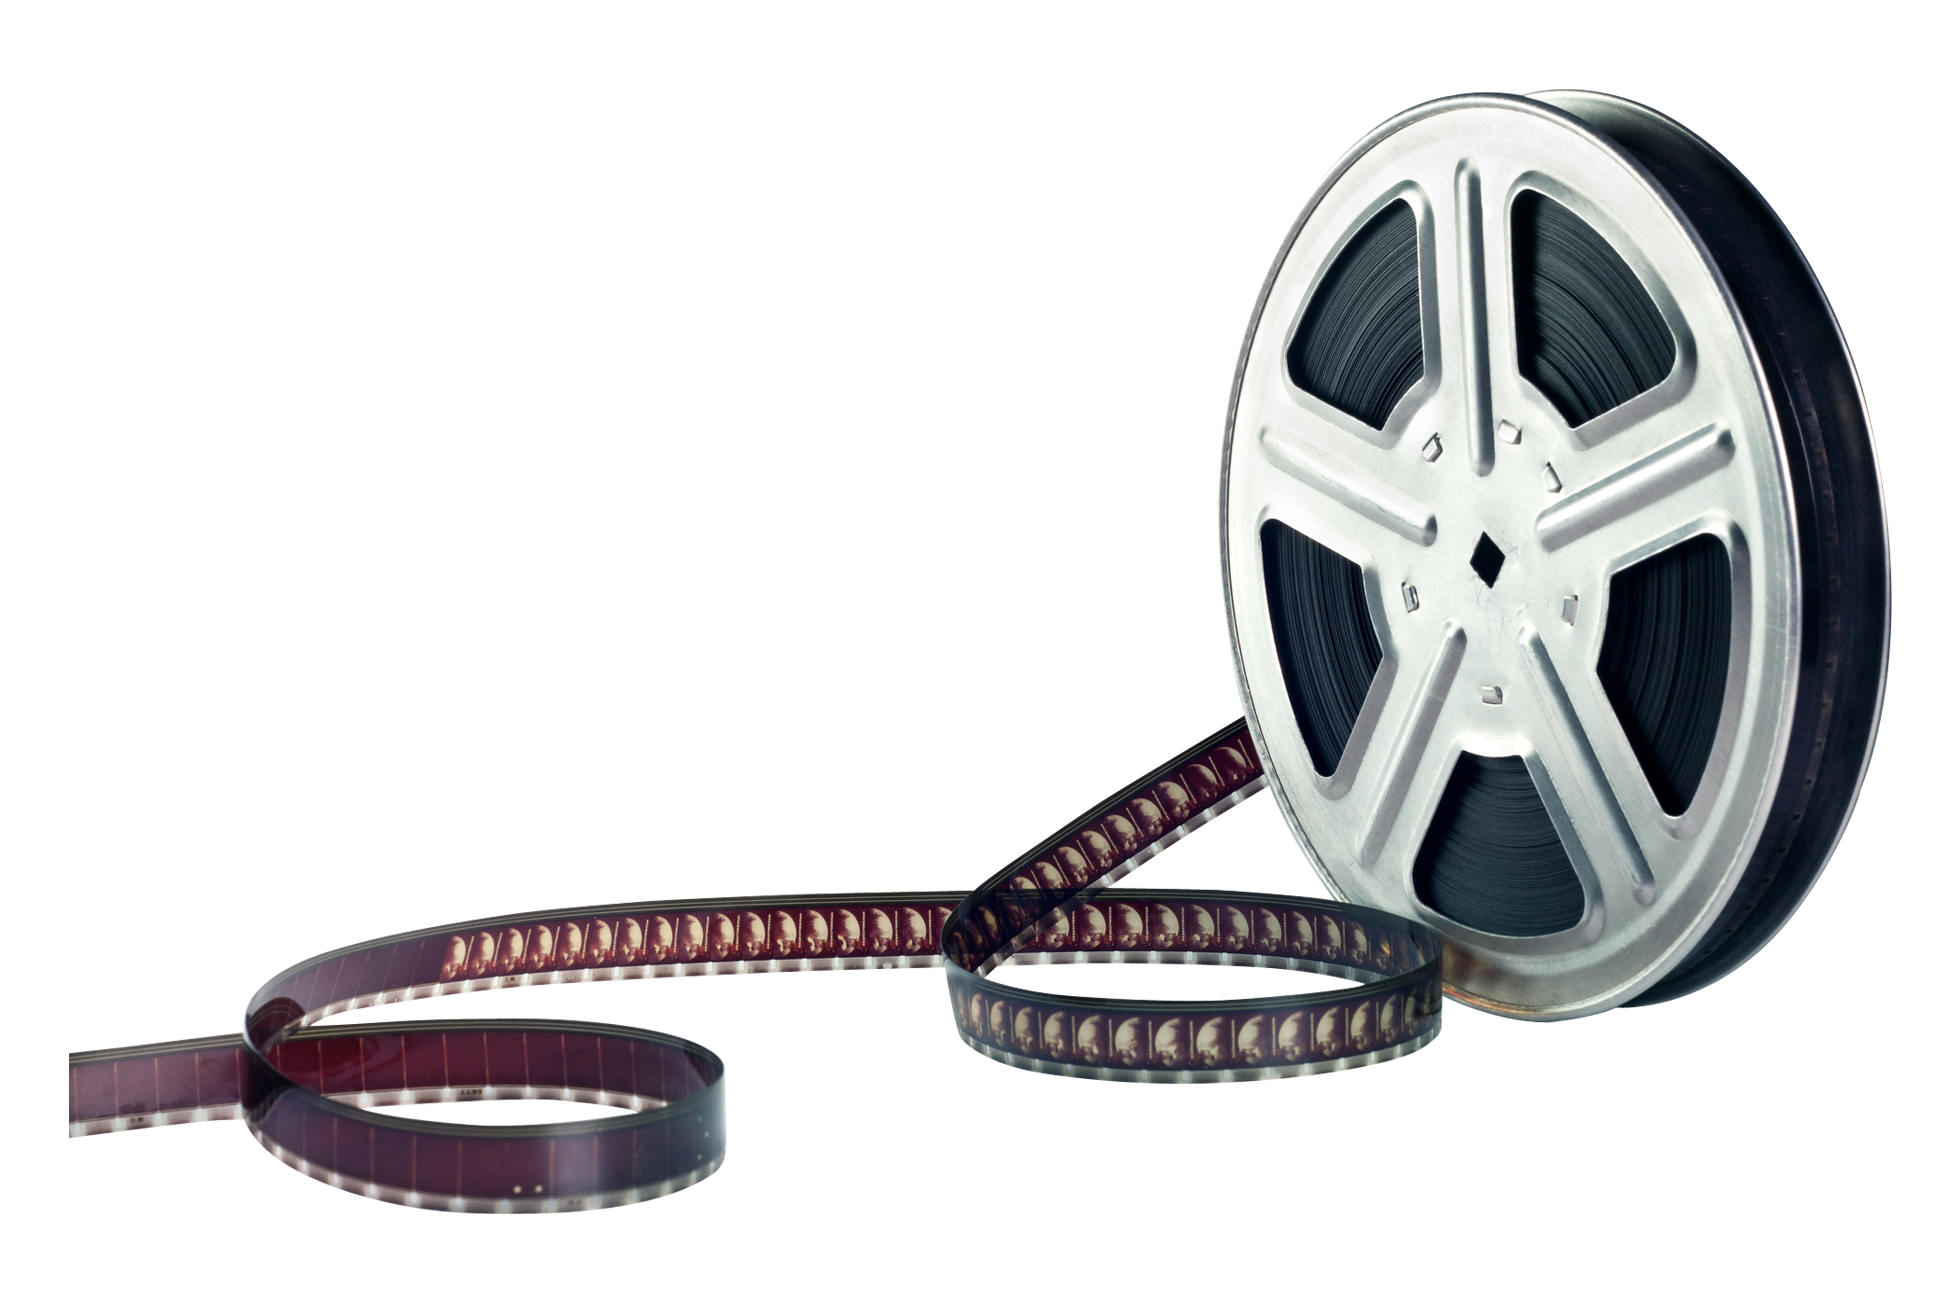 movie reel silhouette | Film